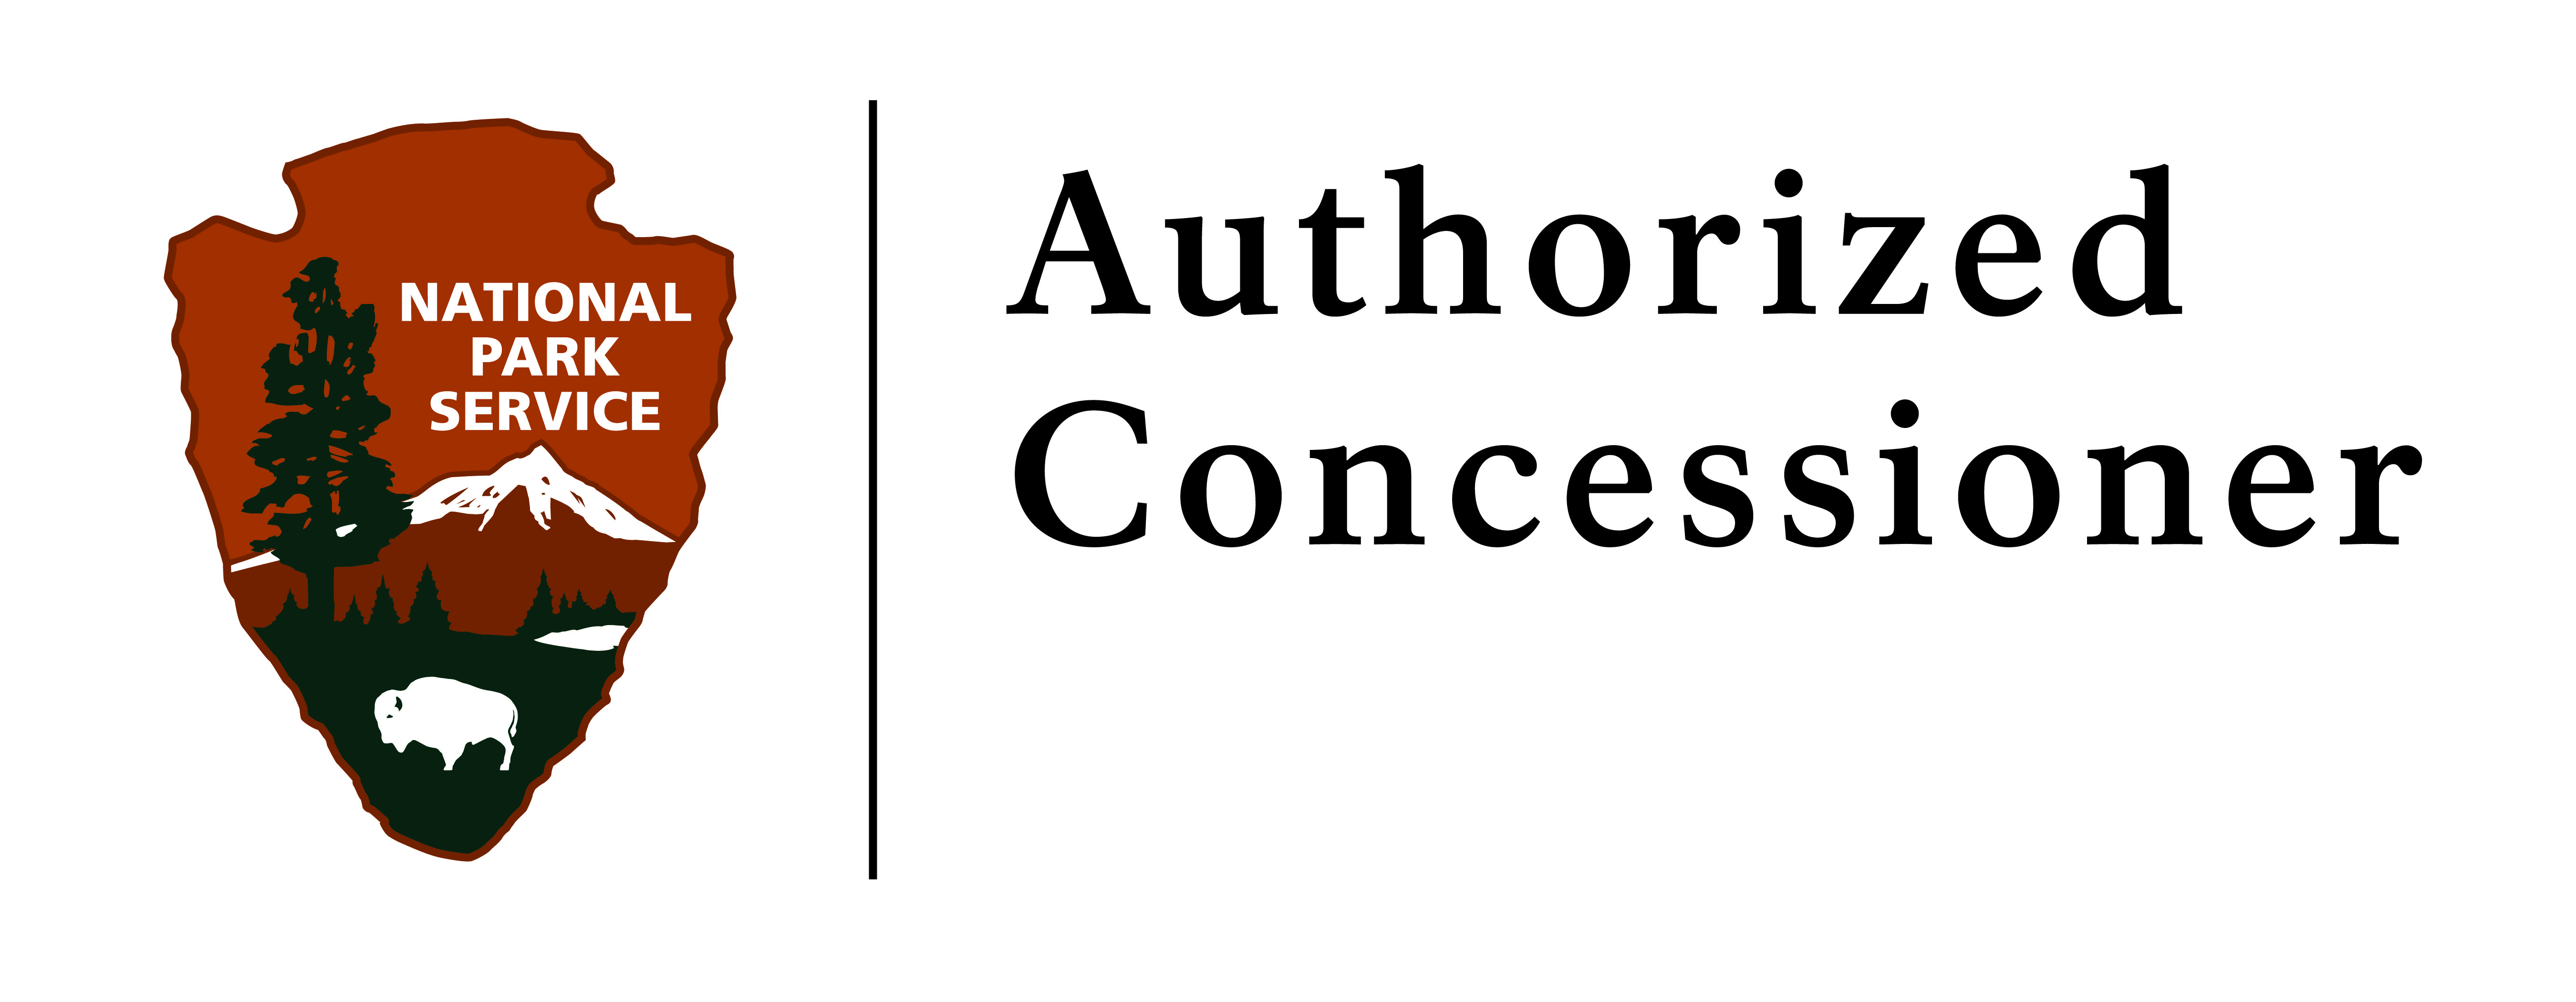 NPS Authorized Concessioner